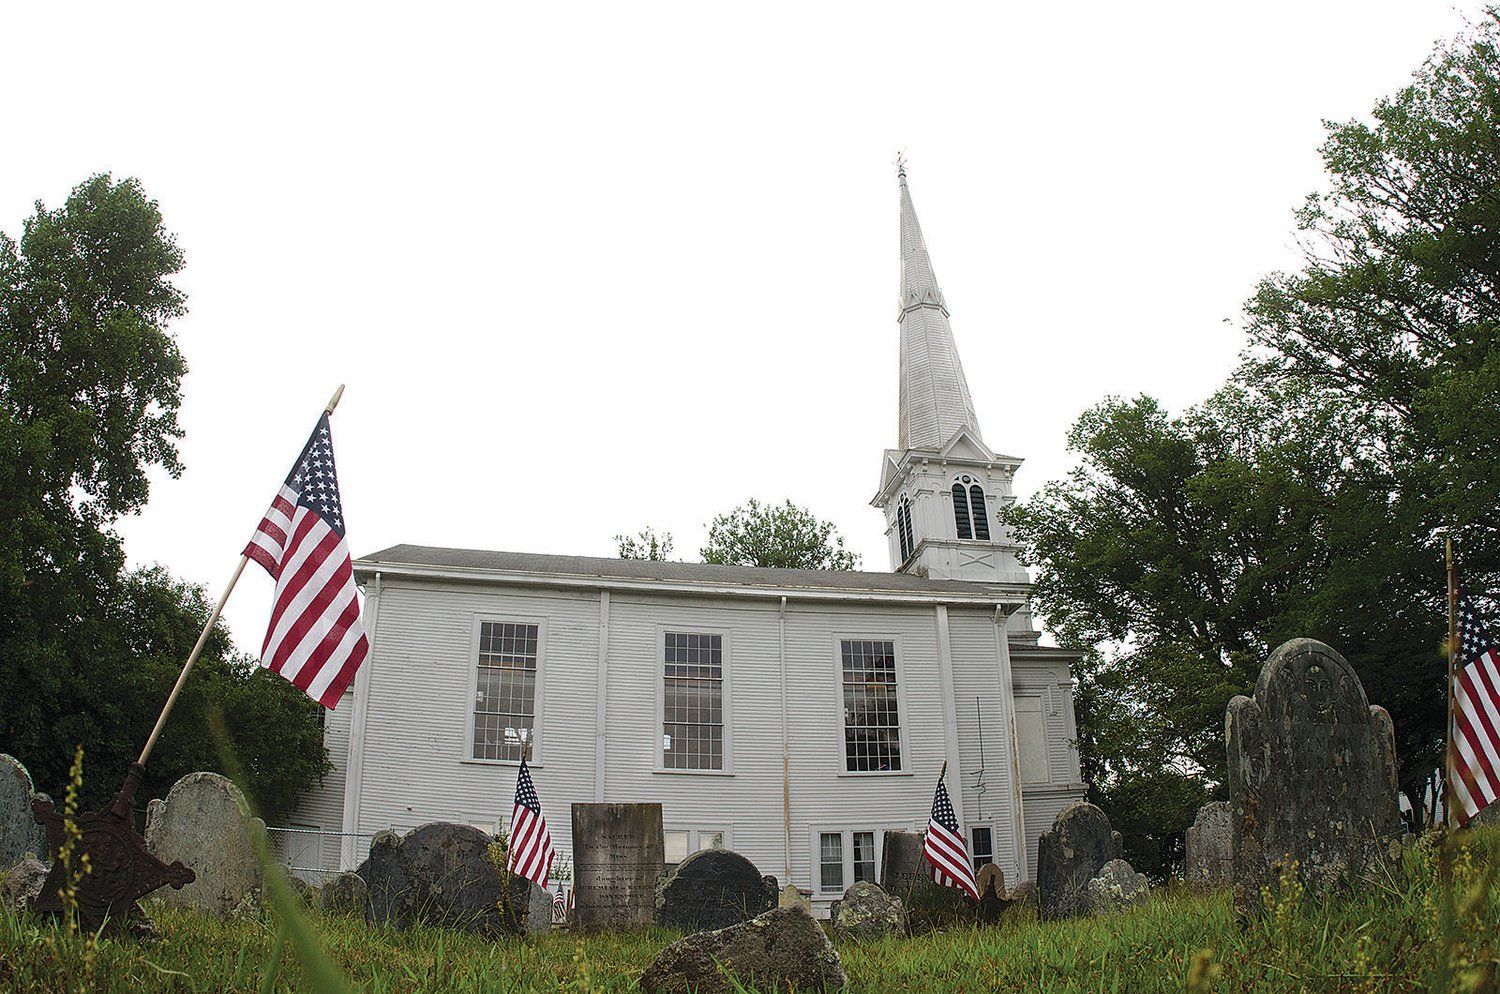 United Congregational Church, long one of Little Compton's most familiar landmarks, will receive updates and renovations meant to address three things —   safety, accessibility and hospitality.